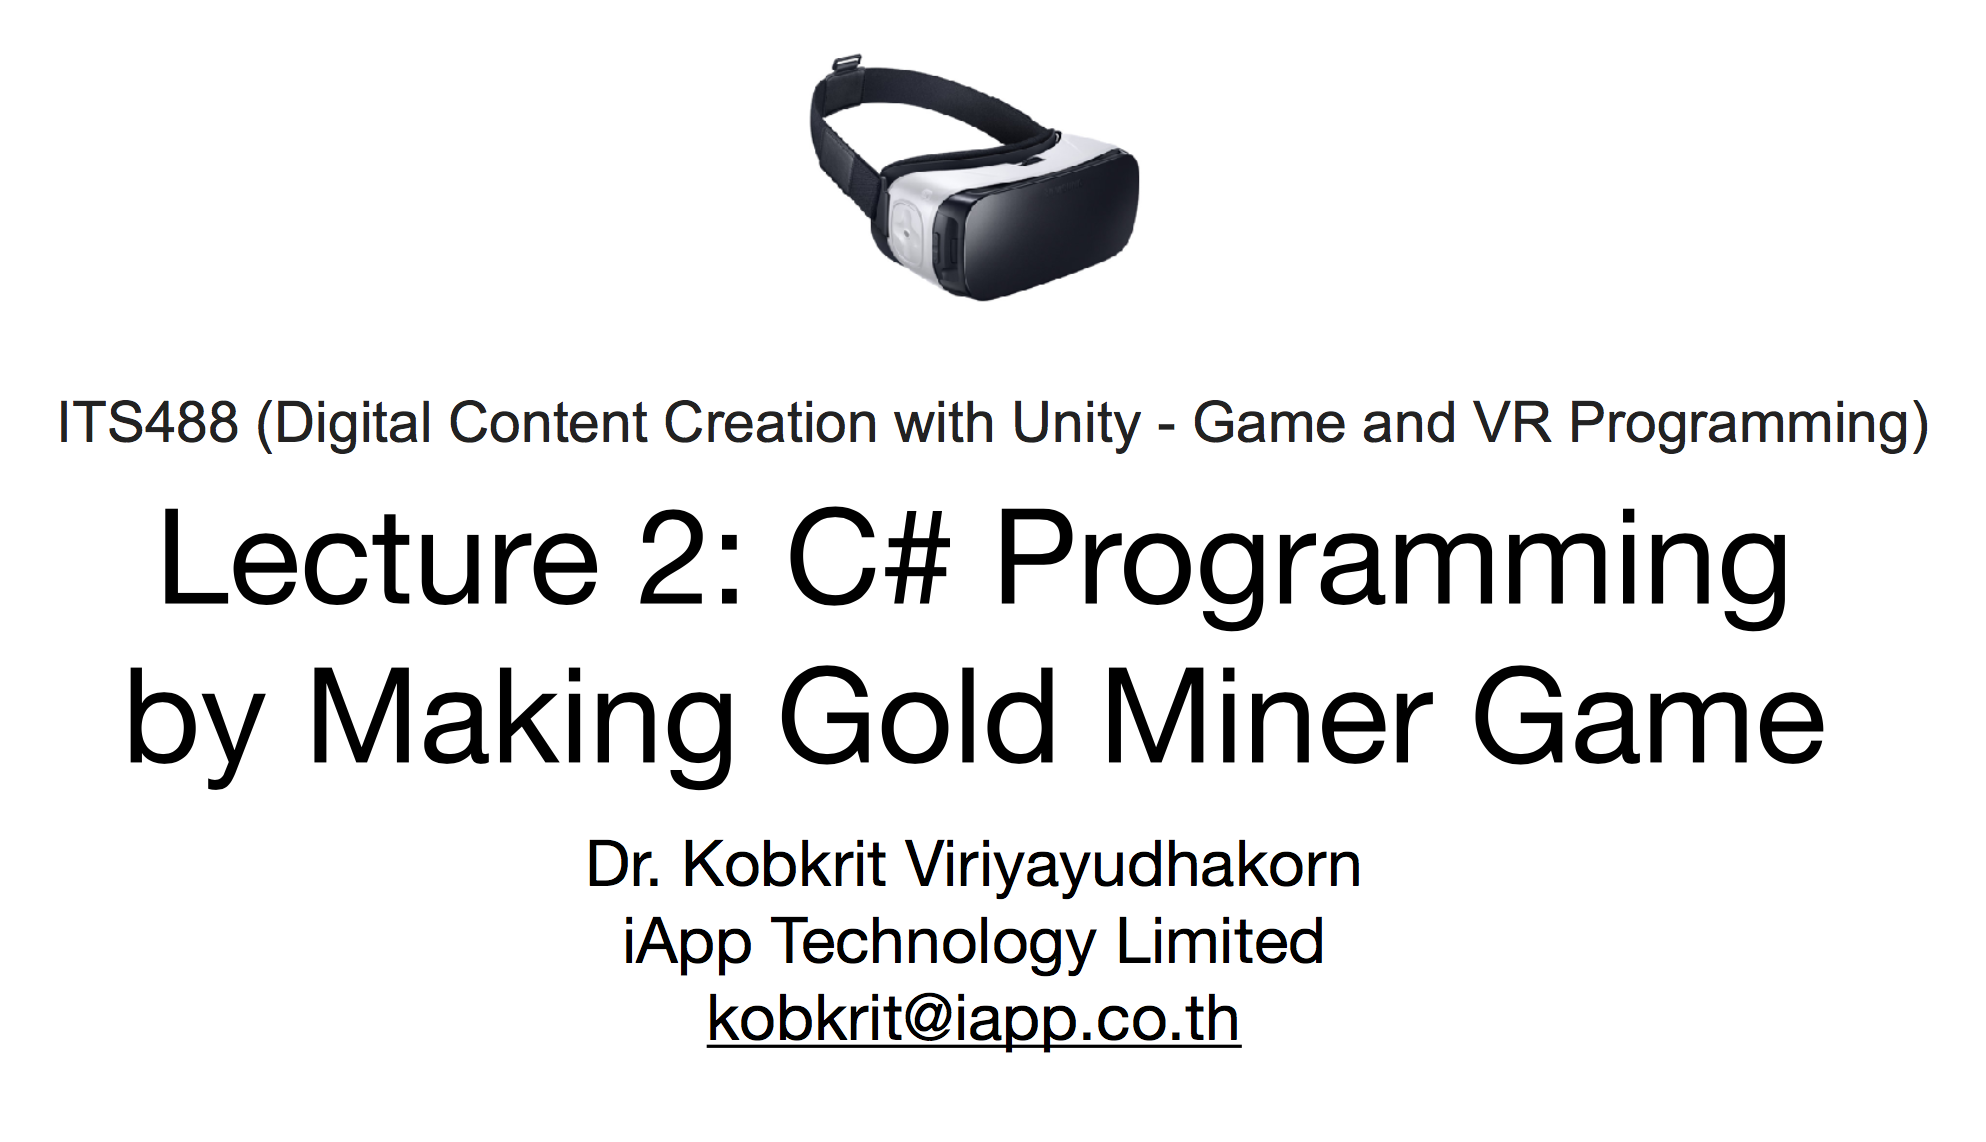 Lecture 2: C# Programming for VR Game in Unity - Kobkrit